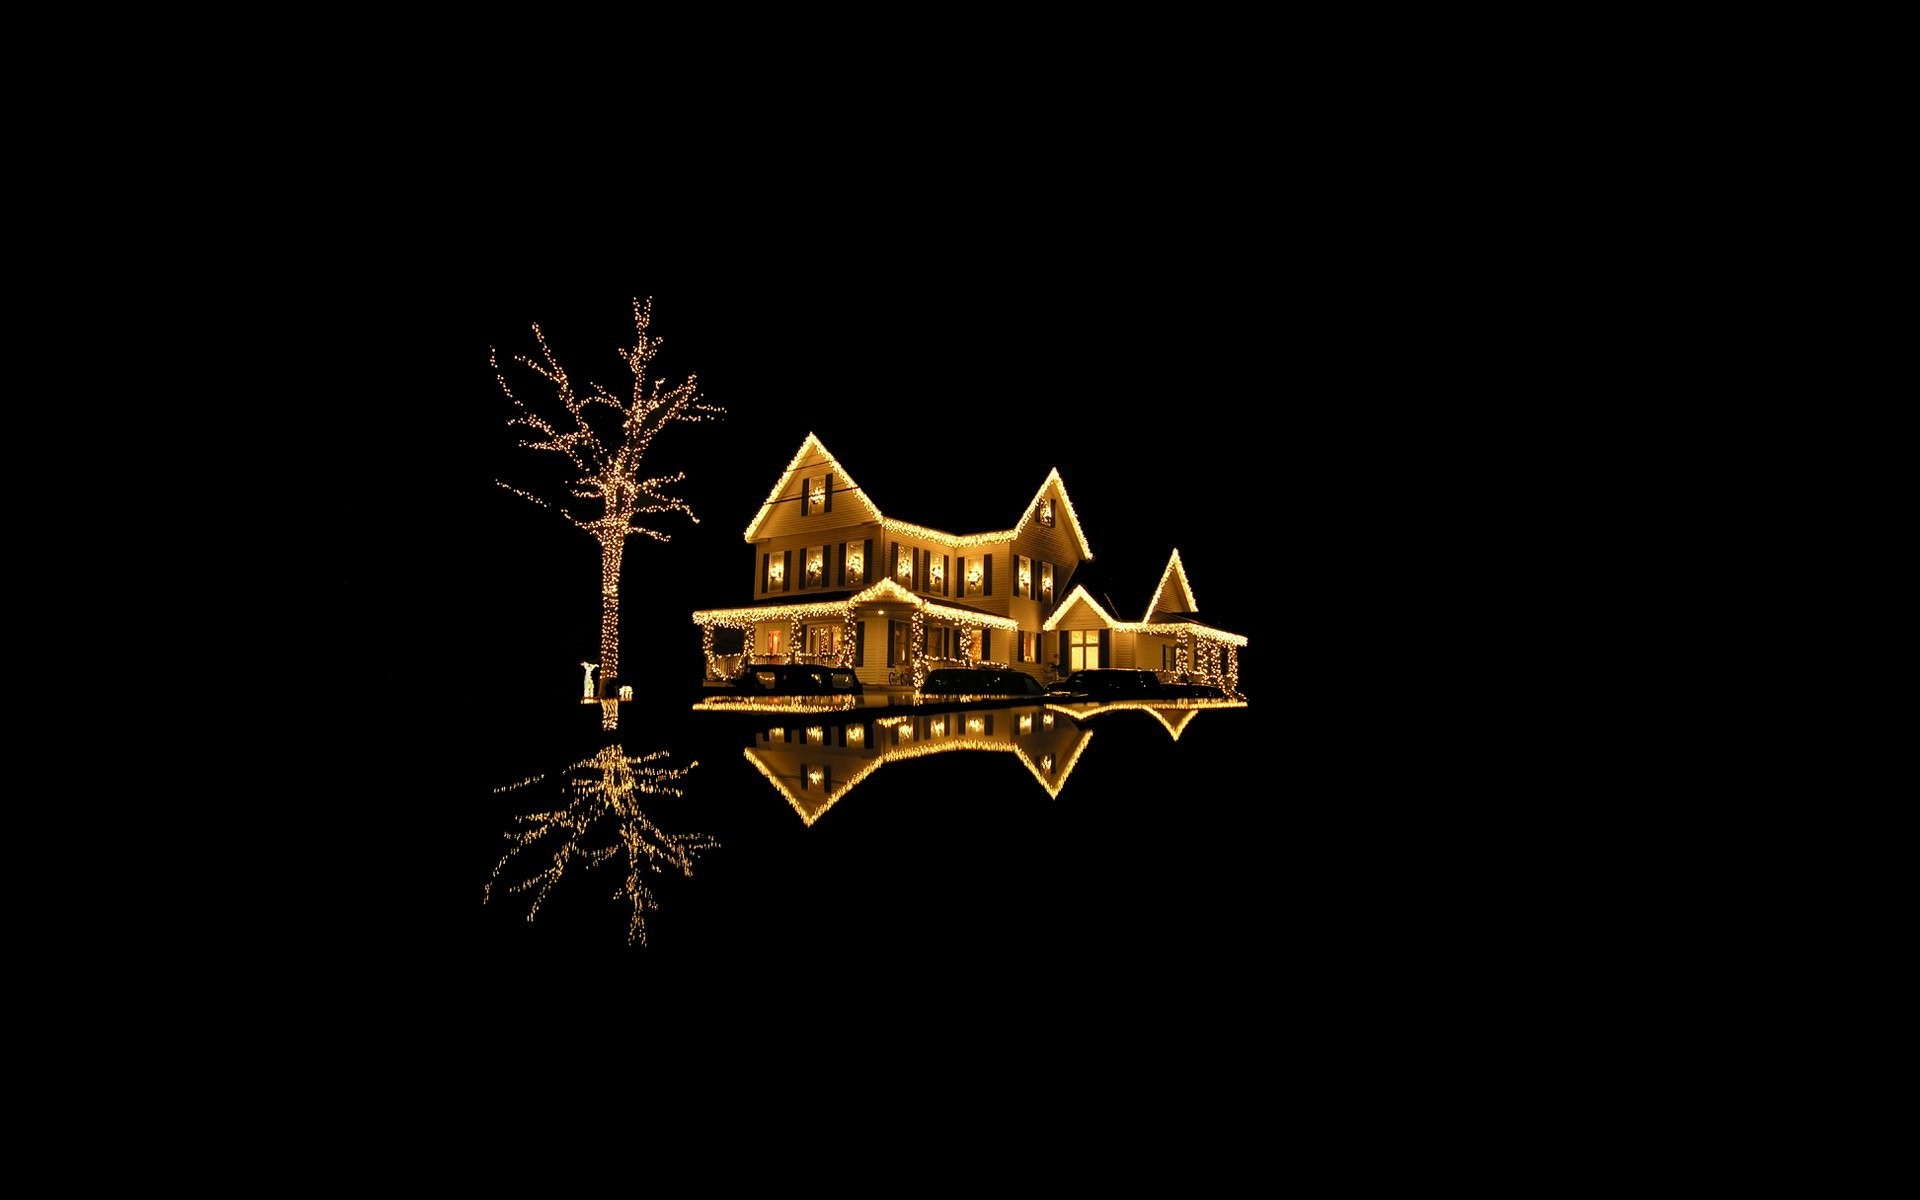 1920x1200 new year new year holiday merry christmas black background house  accommodation building house light lights gold